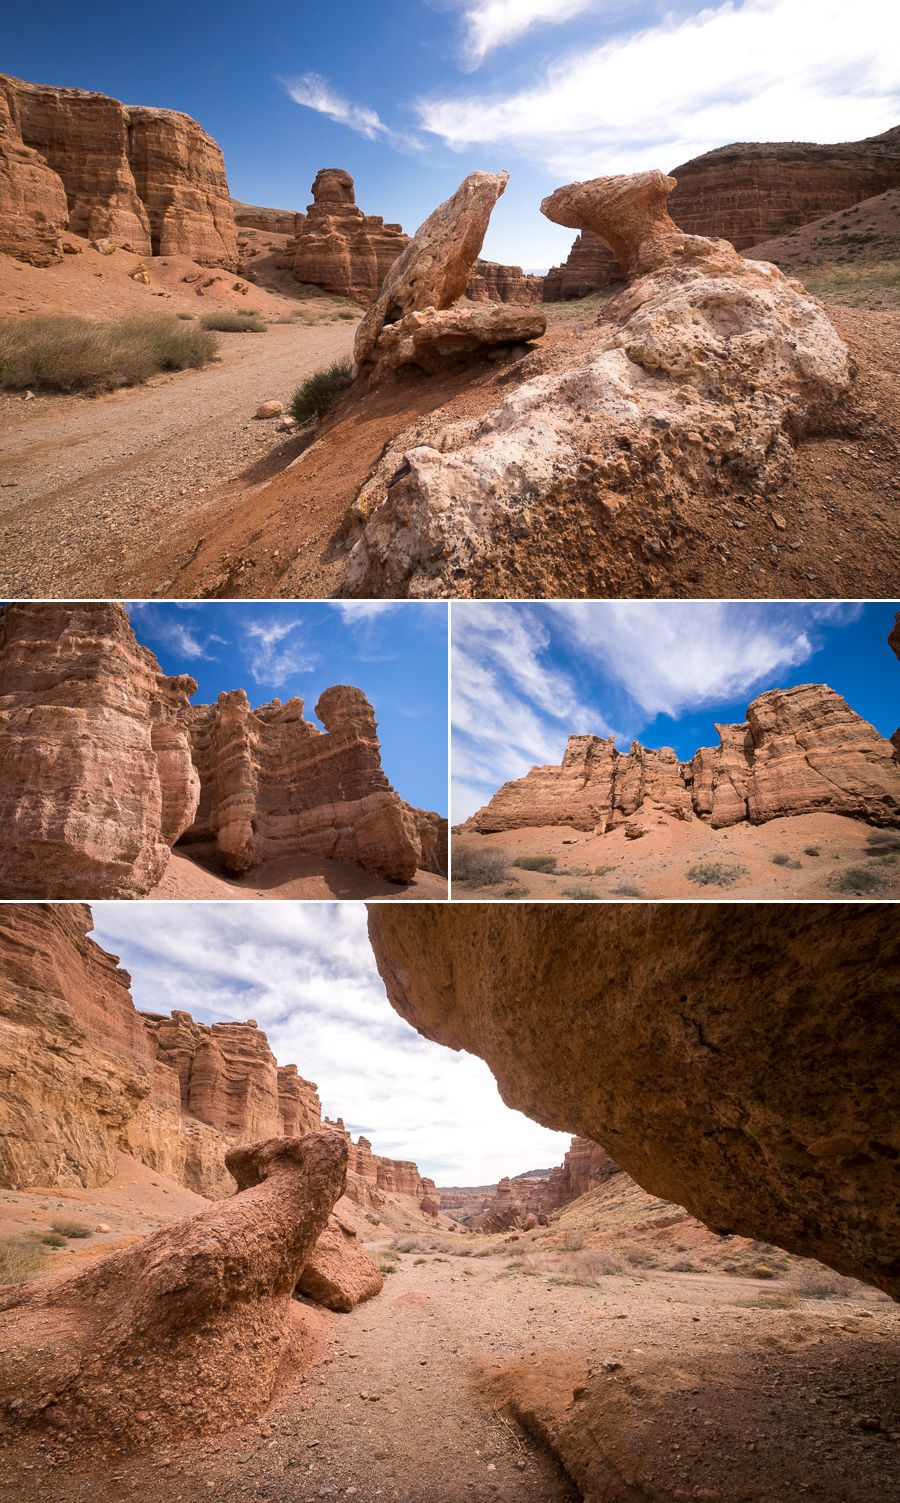 Charyn Canyon - Valley of Castles - Kazakhstan